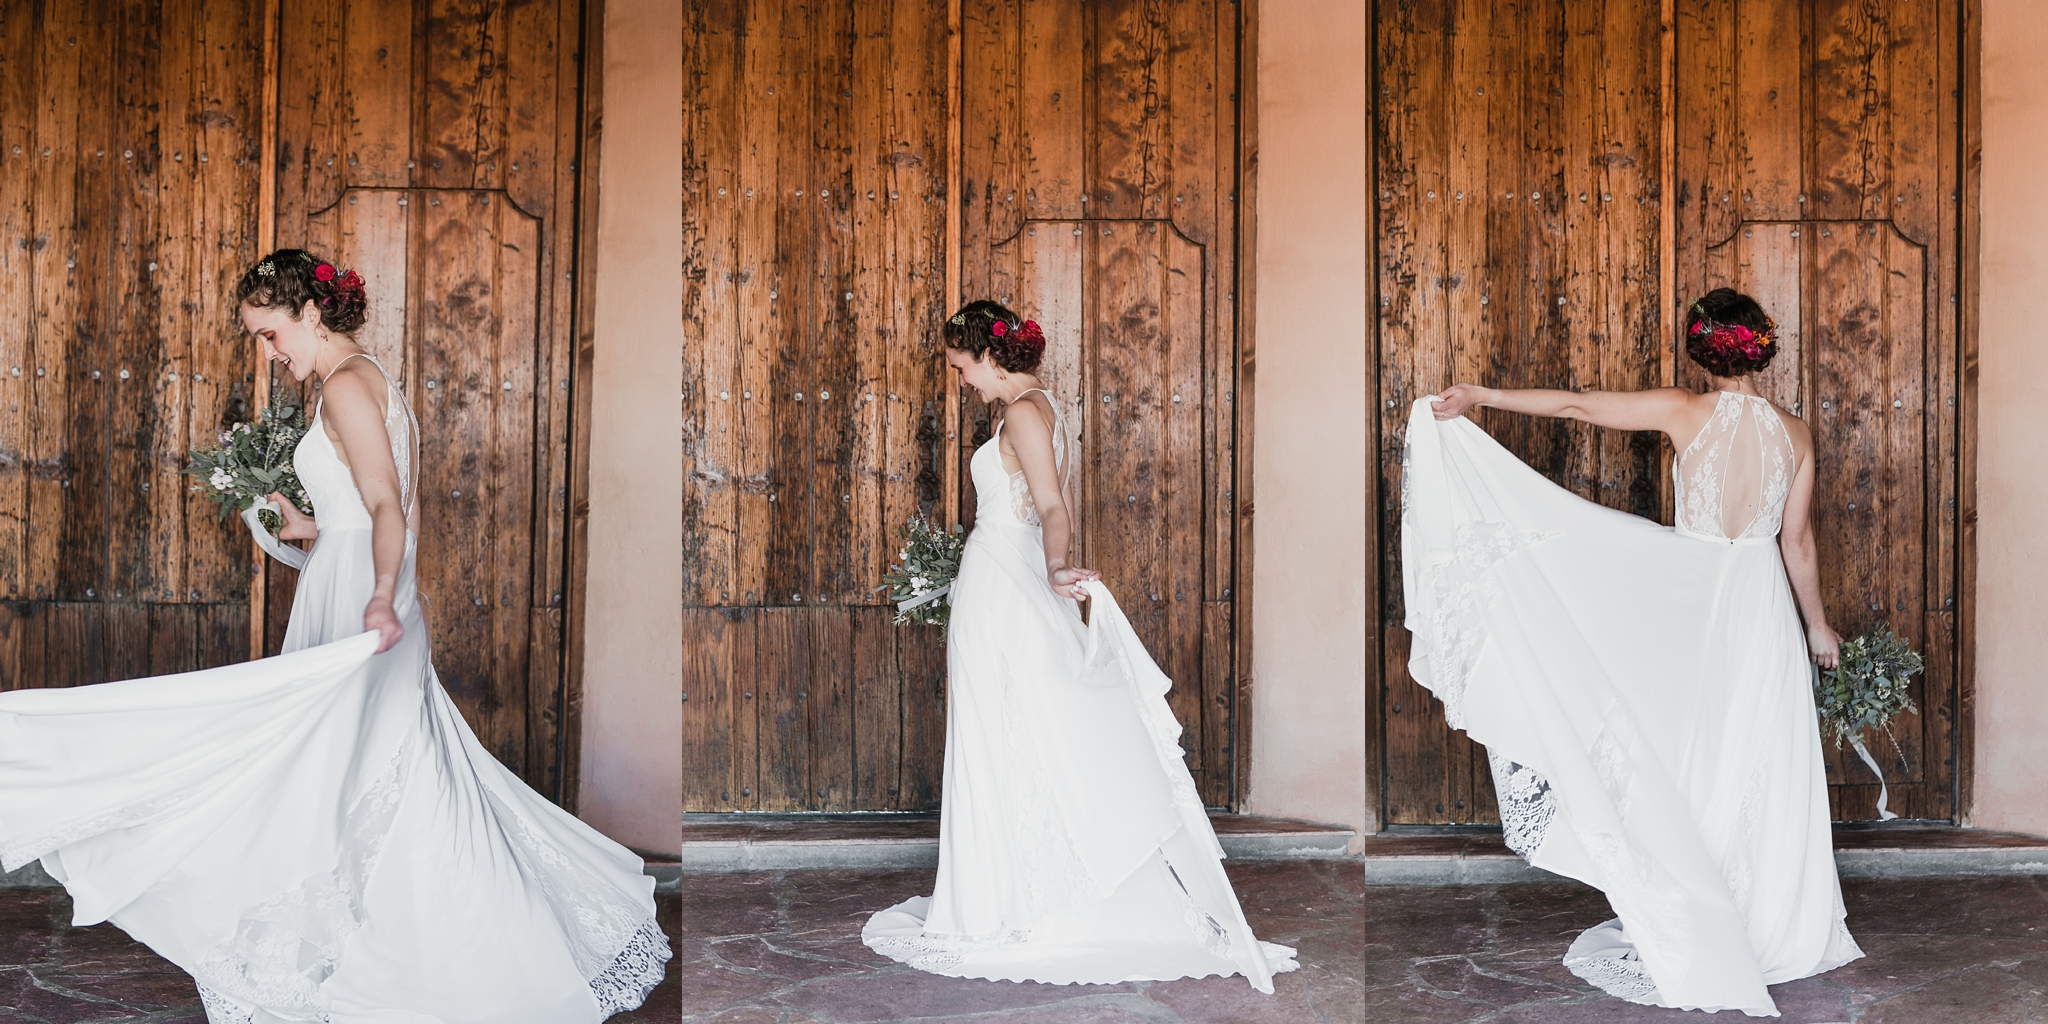 Alicia+lucia+photography+-+albuquerque+wedding+photographer+-+santa+fe+wedding+photography+-+new+mexico+wedding+photographer+-+new+mexico+wedding+-+engagement+-+santa+fe+wedding+-+hacienda+dona+andrea+-+hacienda+dona+andrea+wedding_0027.jpg